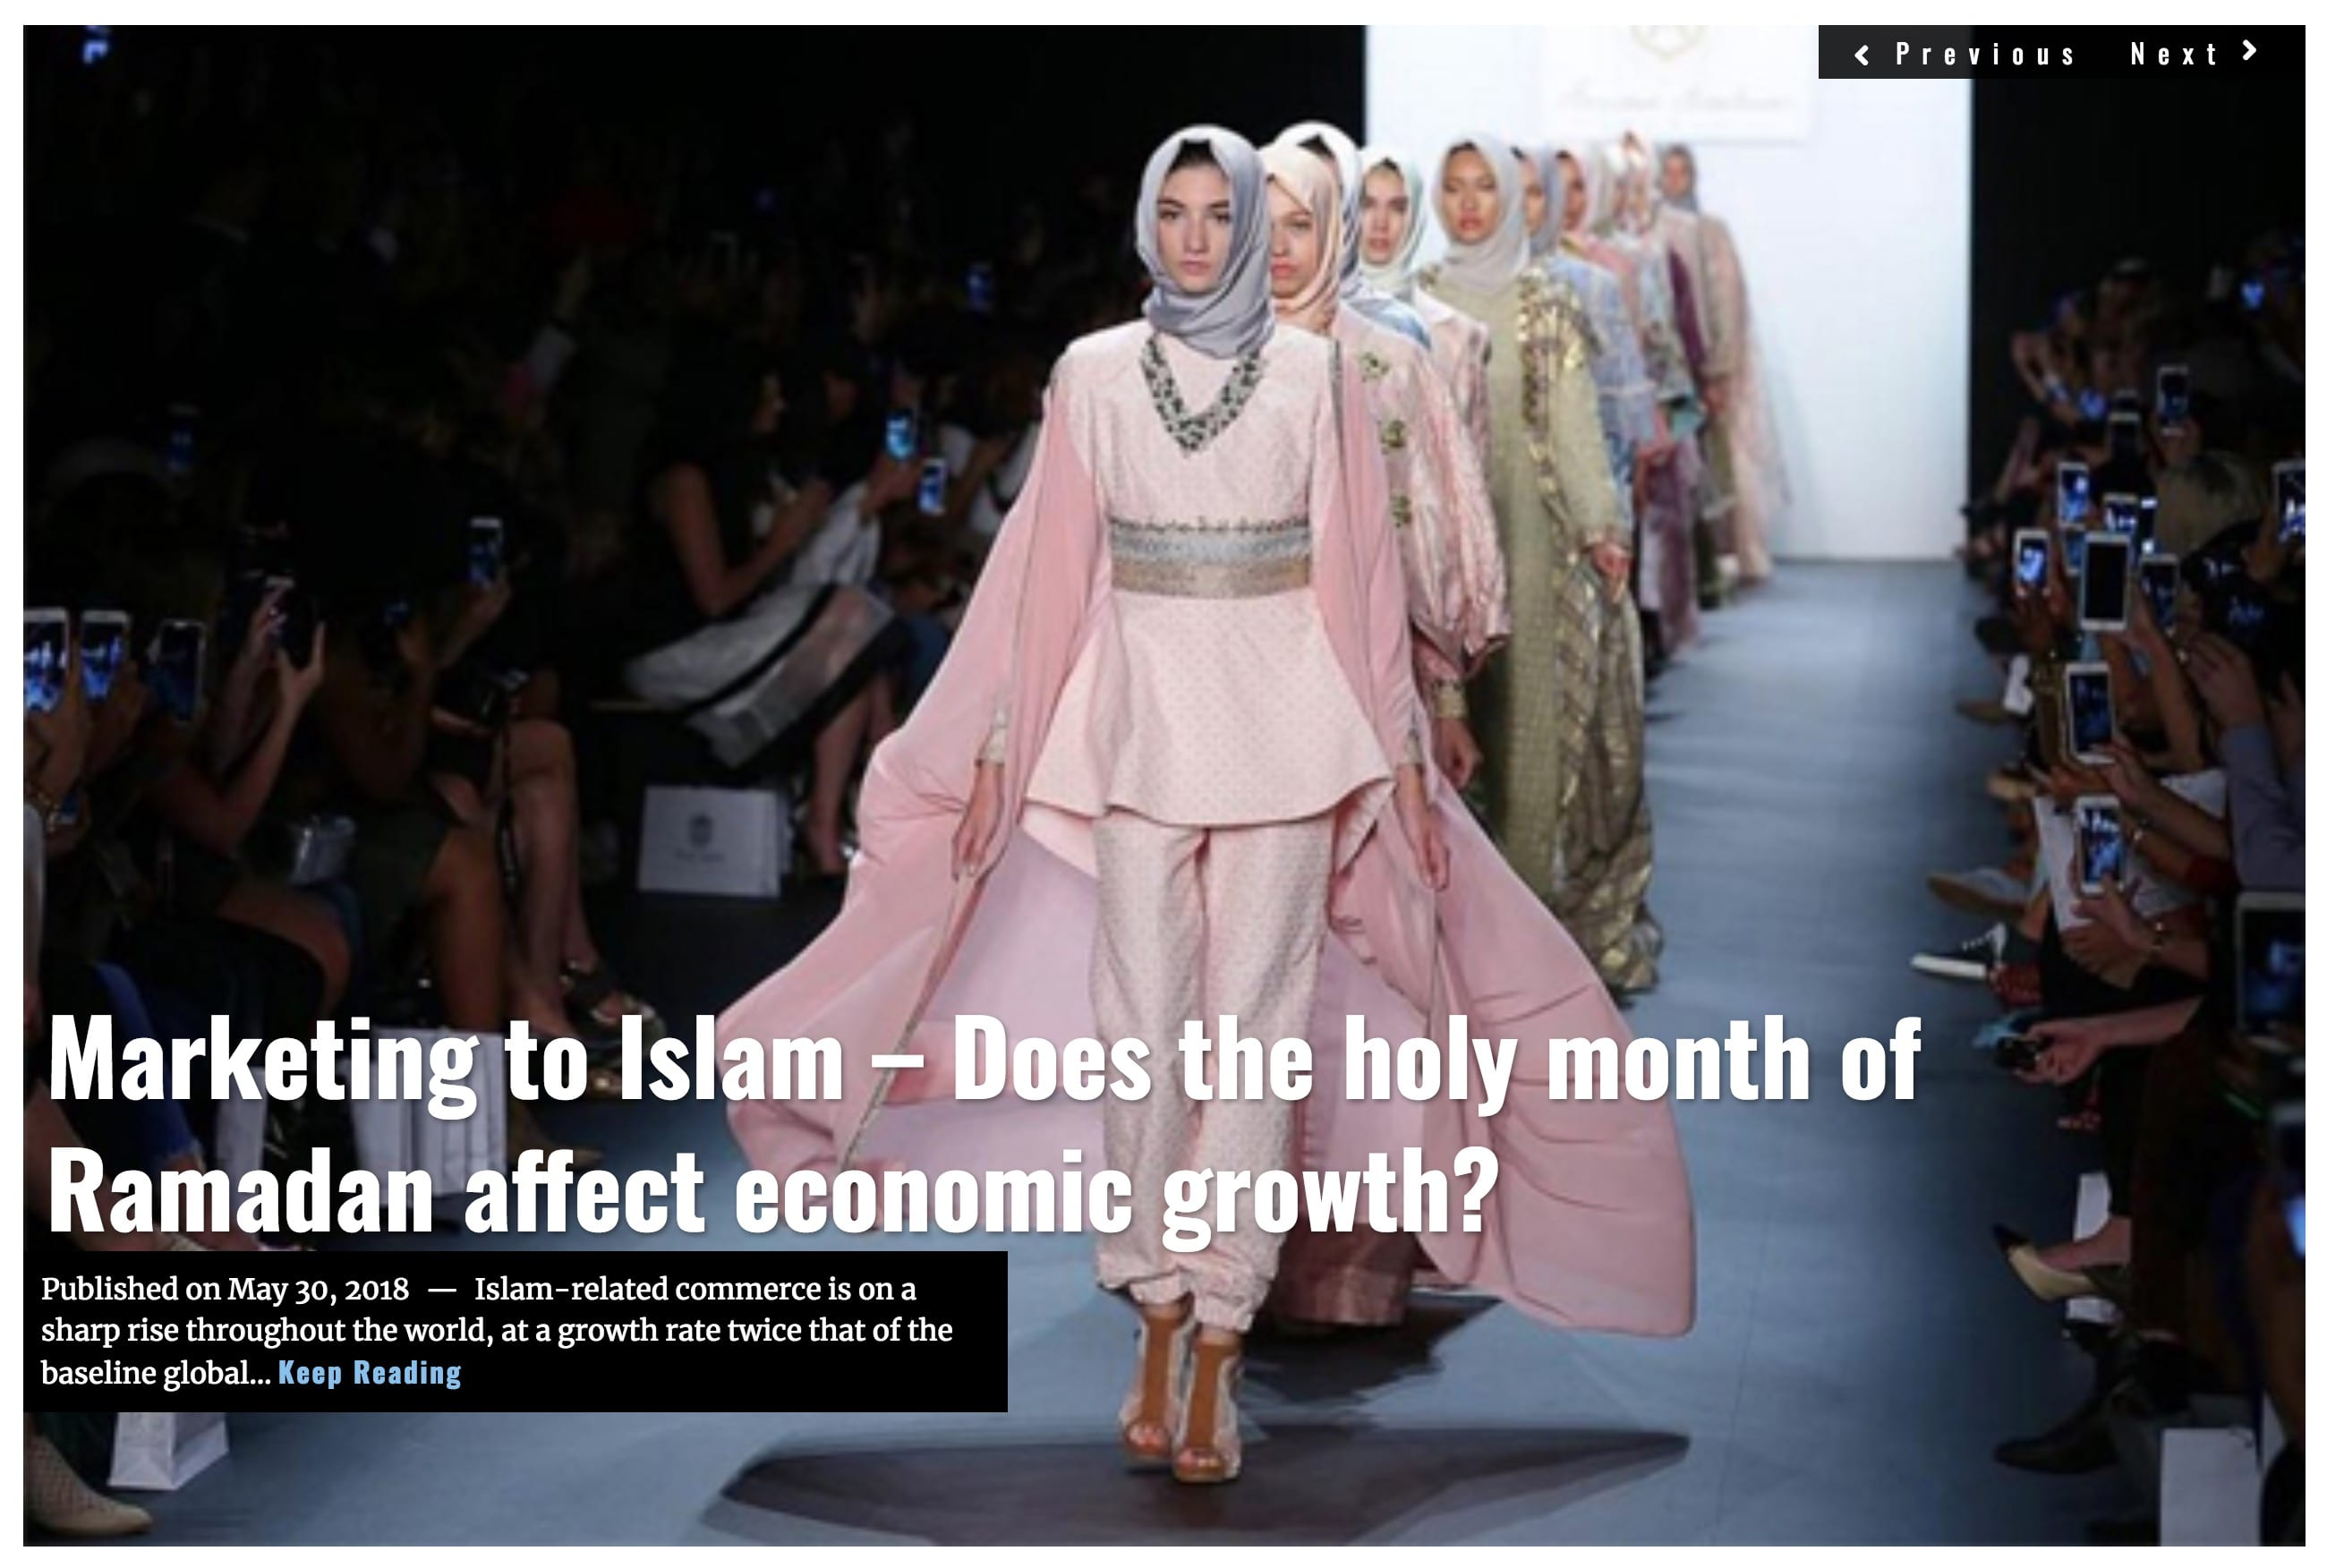 Image Lima Charlie News Headline Marketing to Islam – Does the holy month of Ramadan affect economic growth